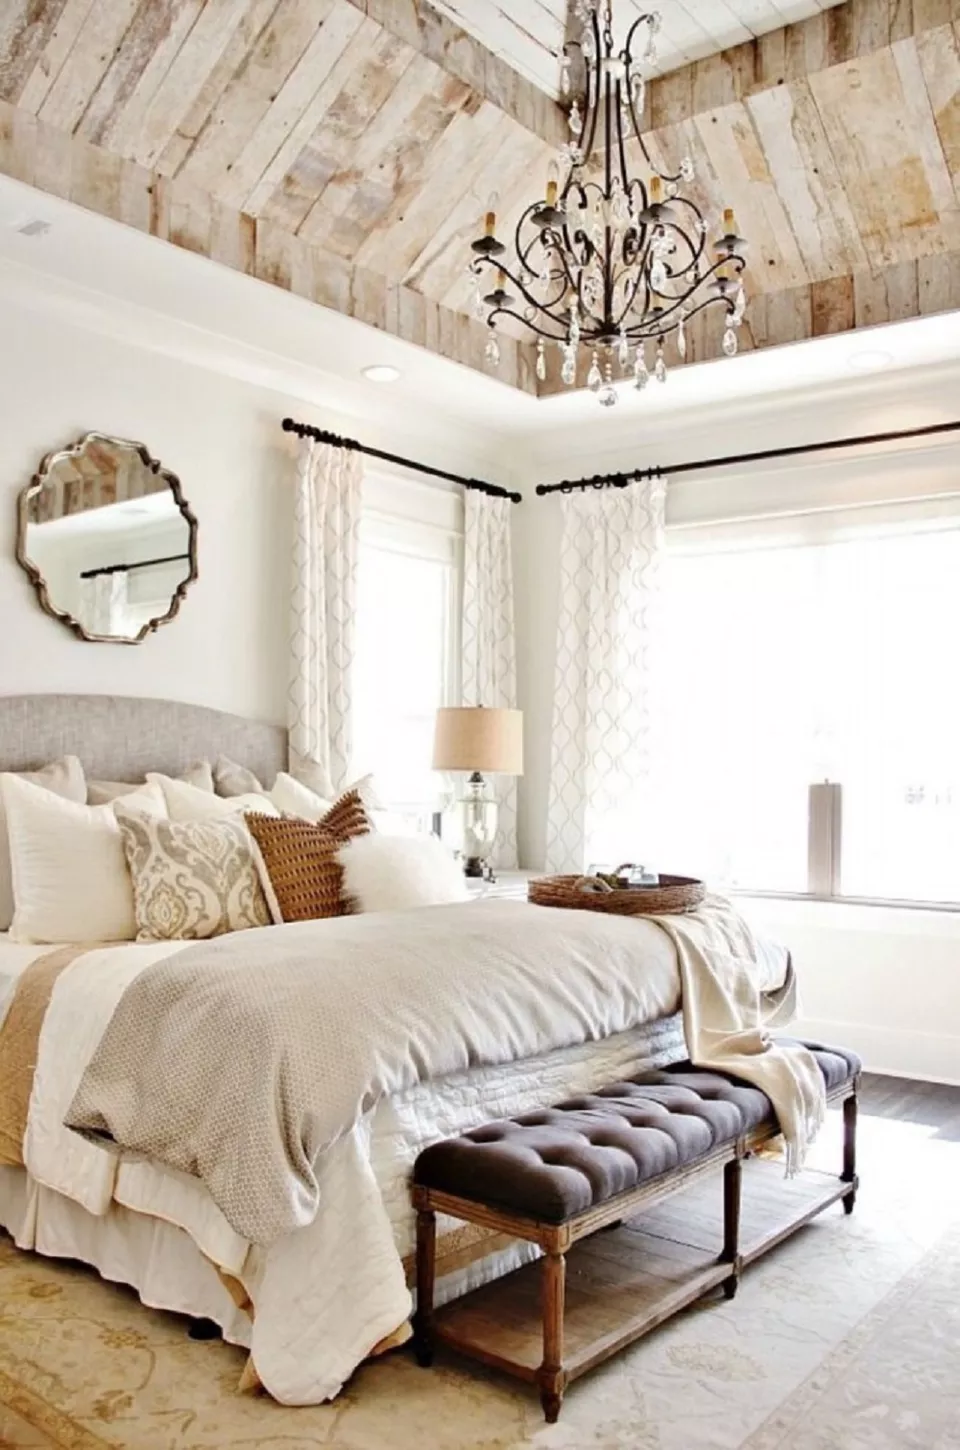 Ideas For French Country Style Bedroom Decor Country Bedroom Design Master Bedrooms Decor French Country Interiors